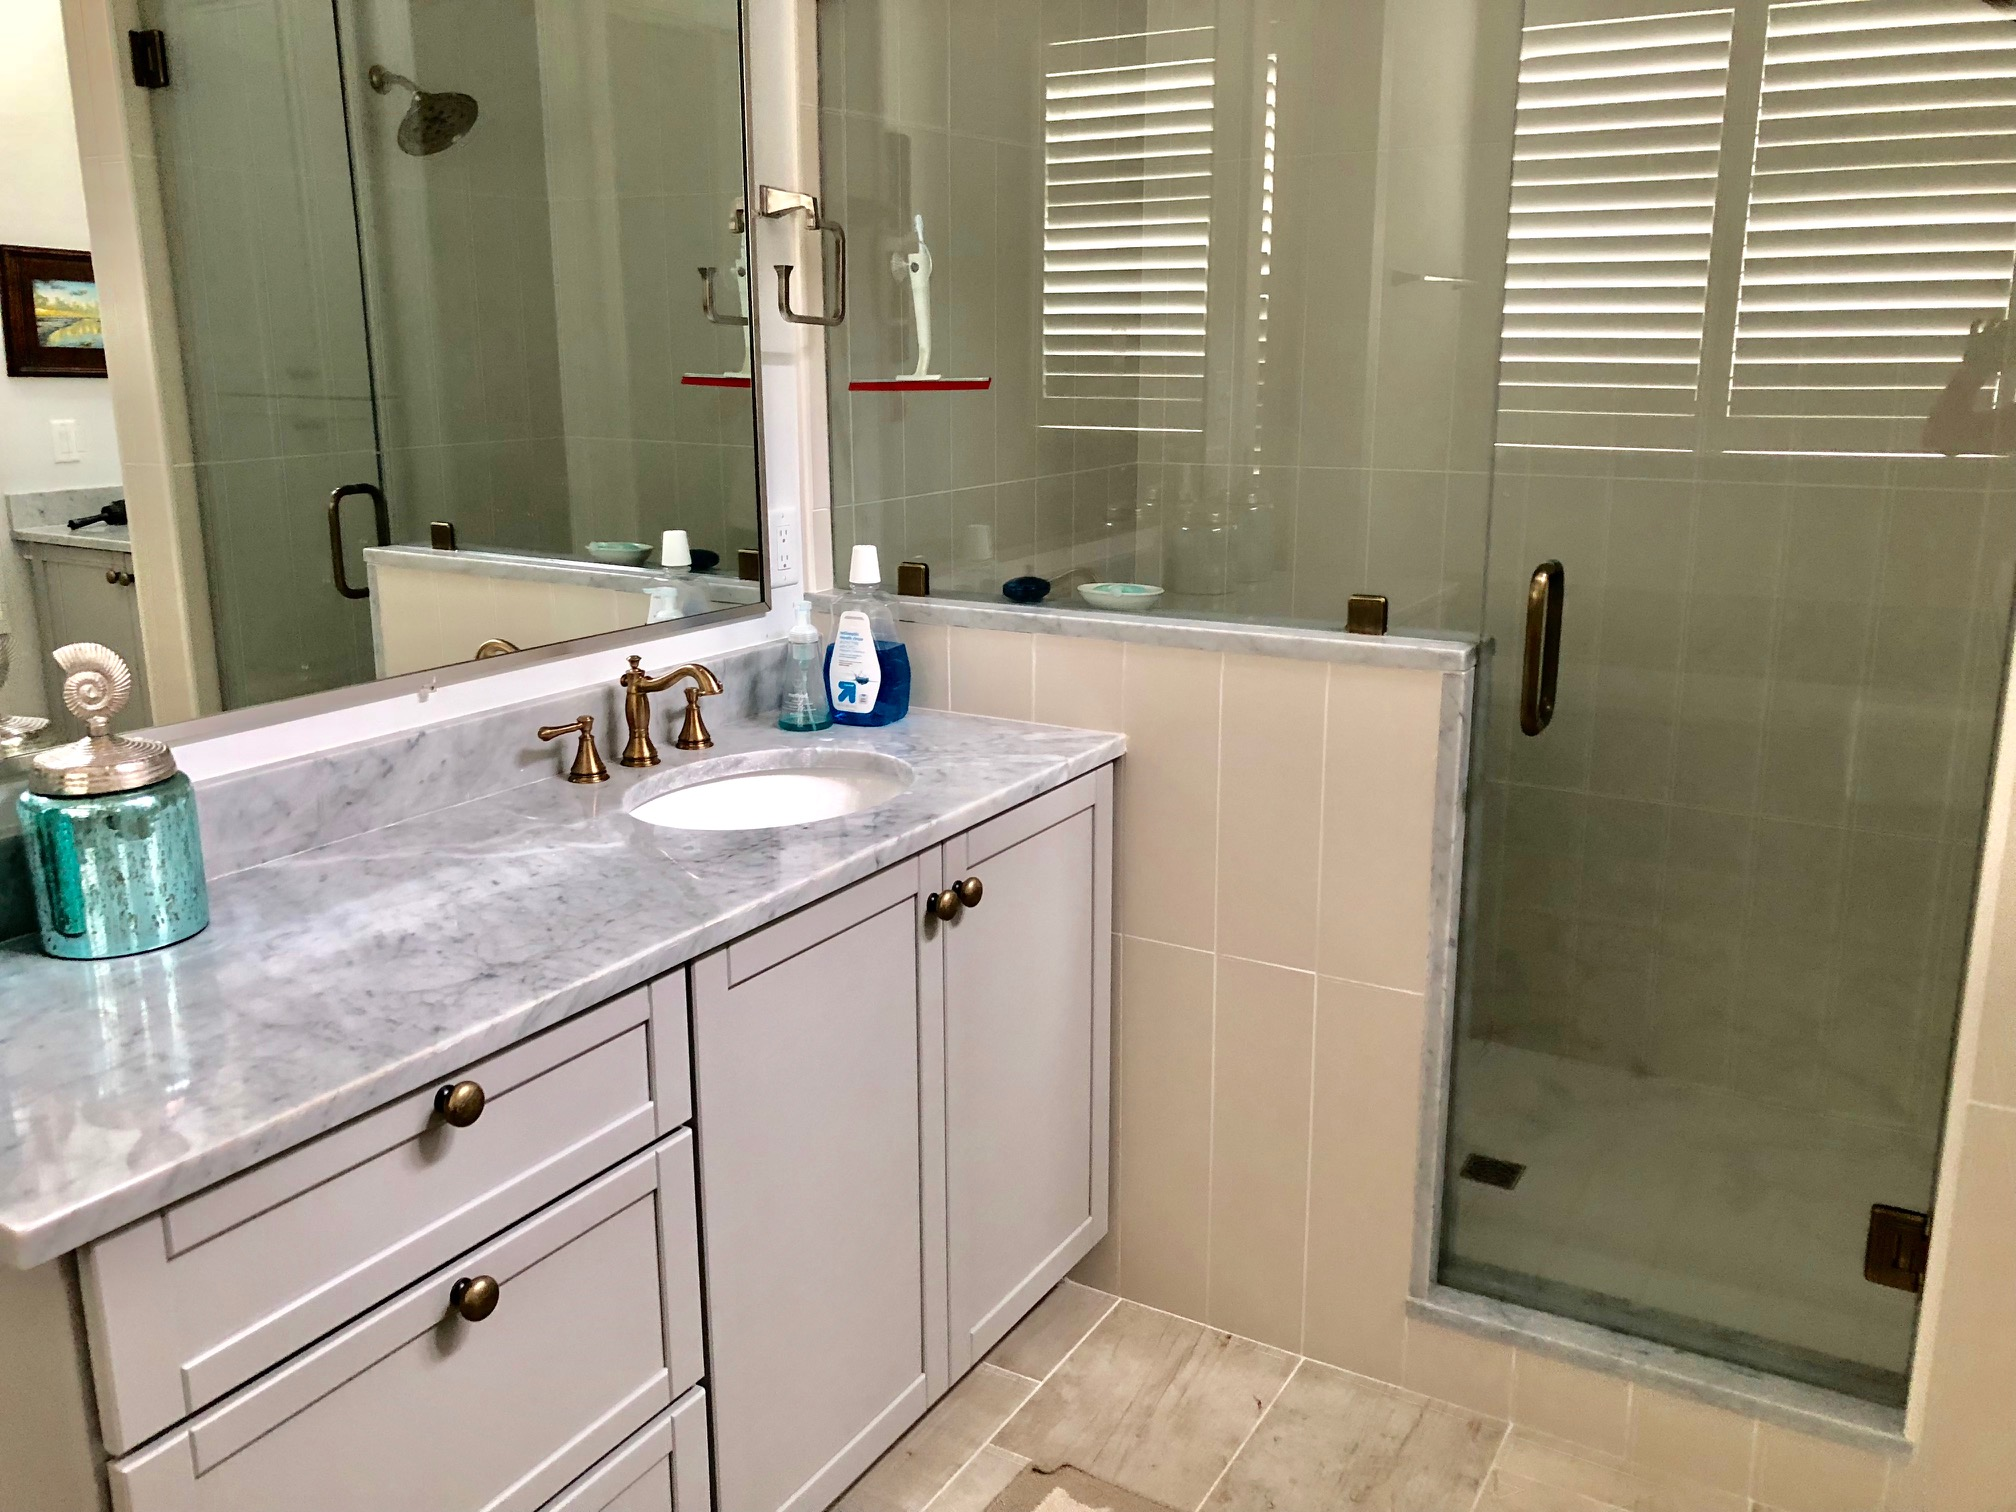 The master en-suite has marble counters, a large walk in shower and two separate sink/vanity areas.